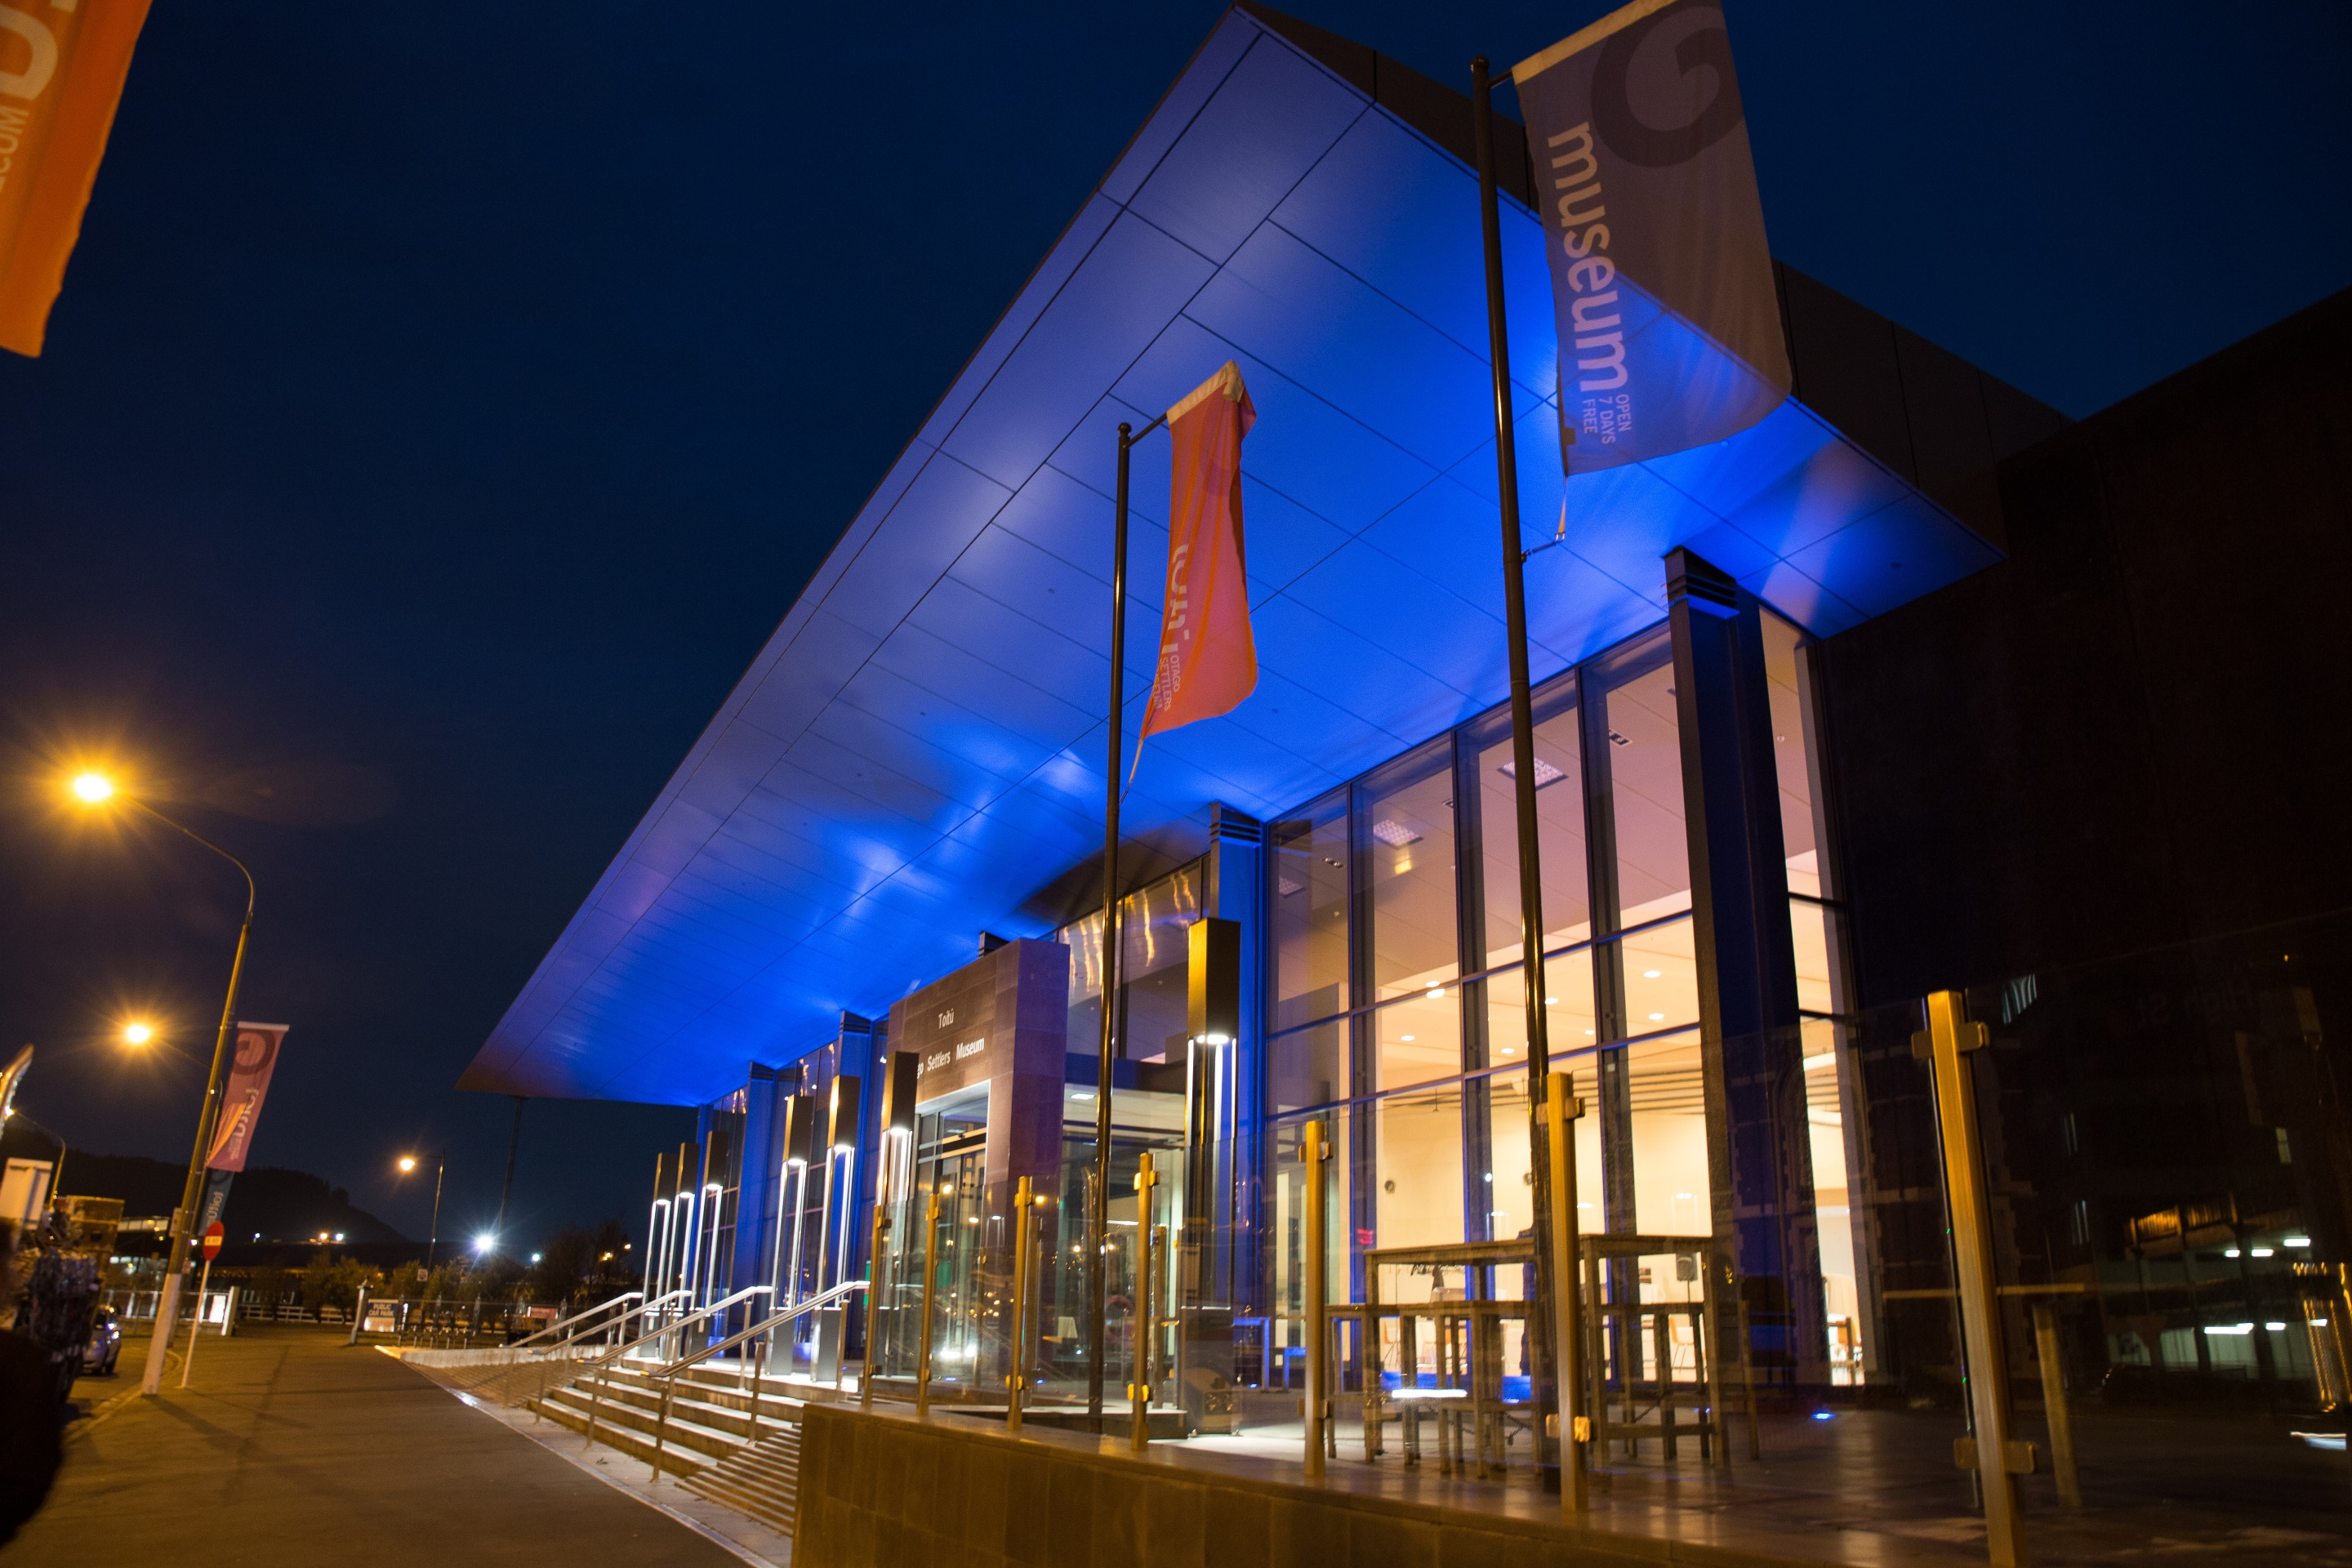 Conference Event Centre At Night